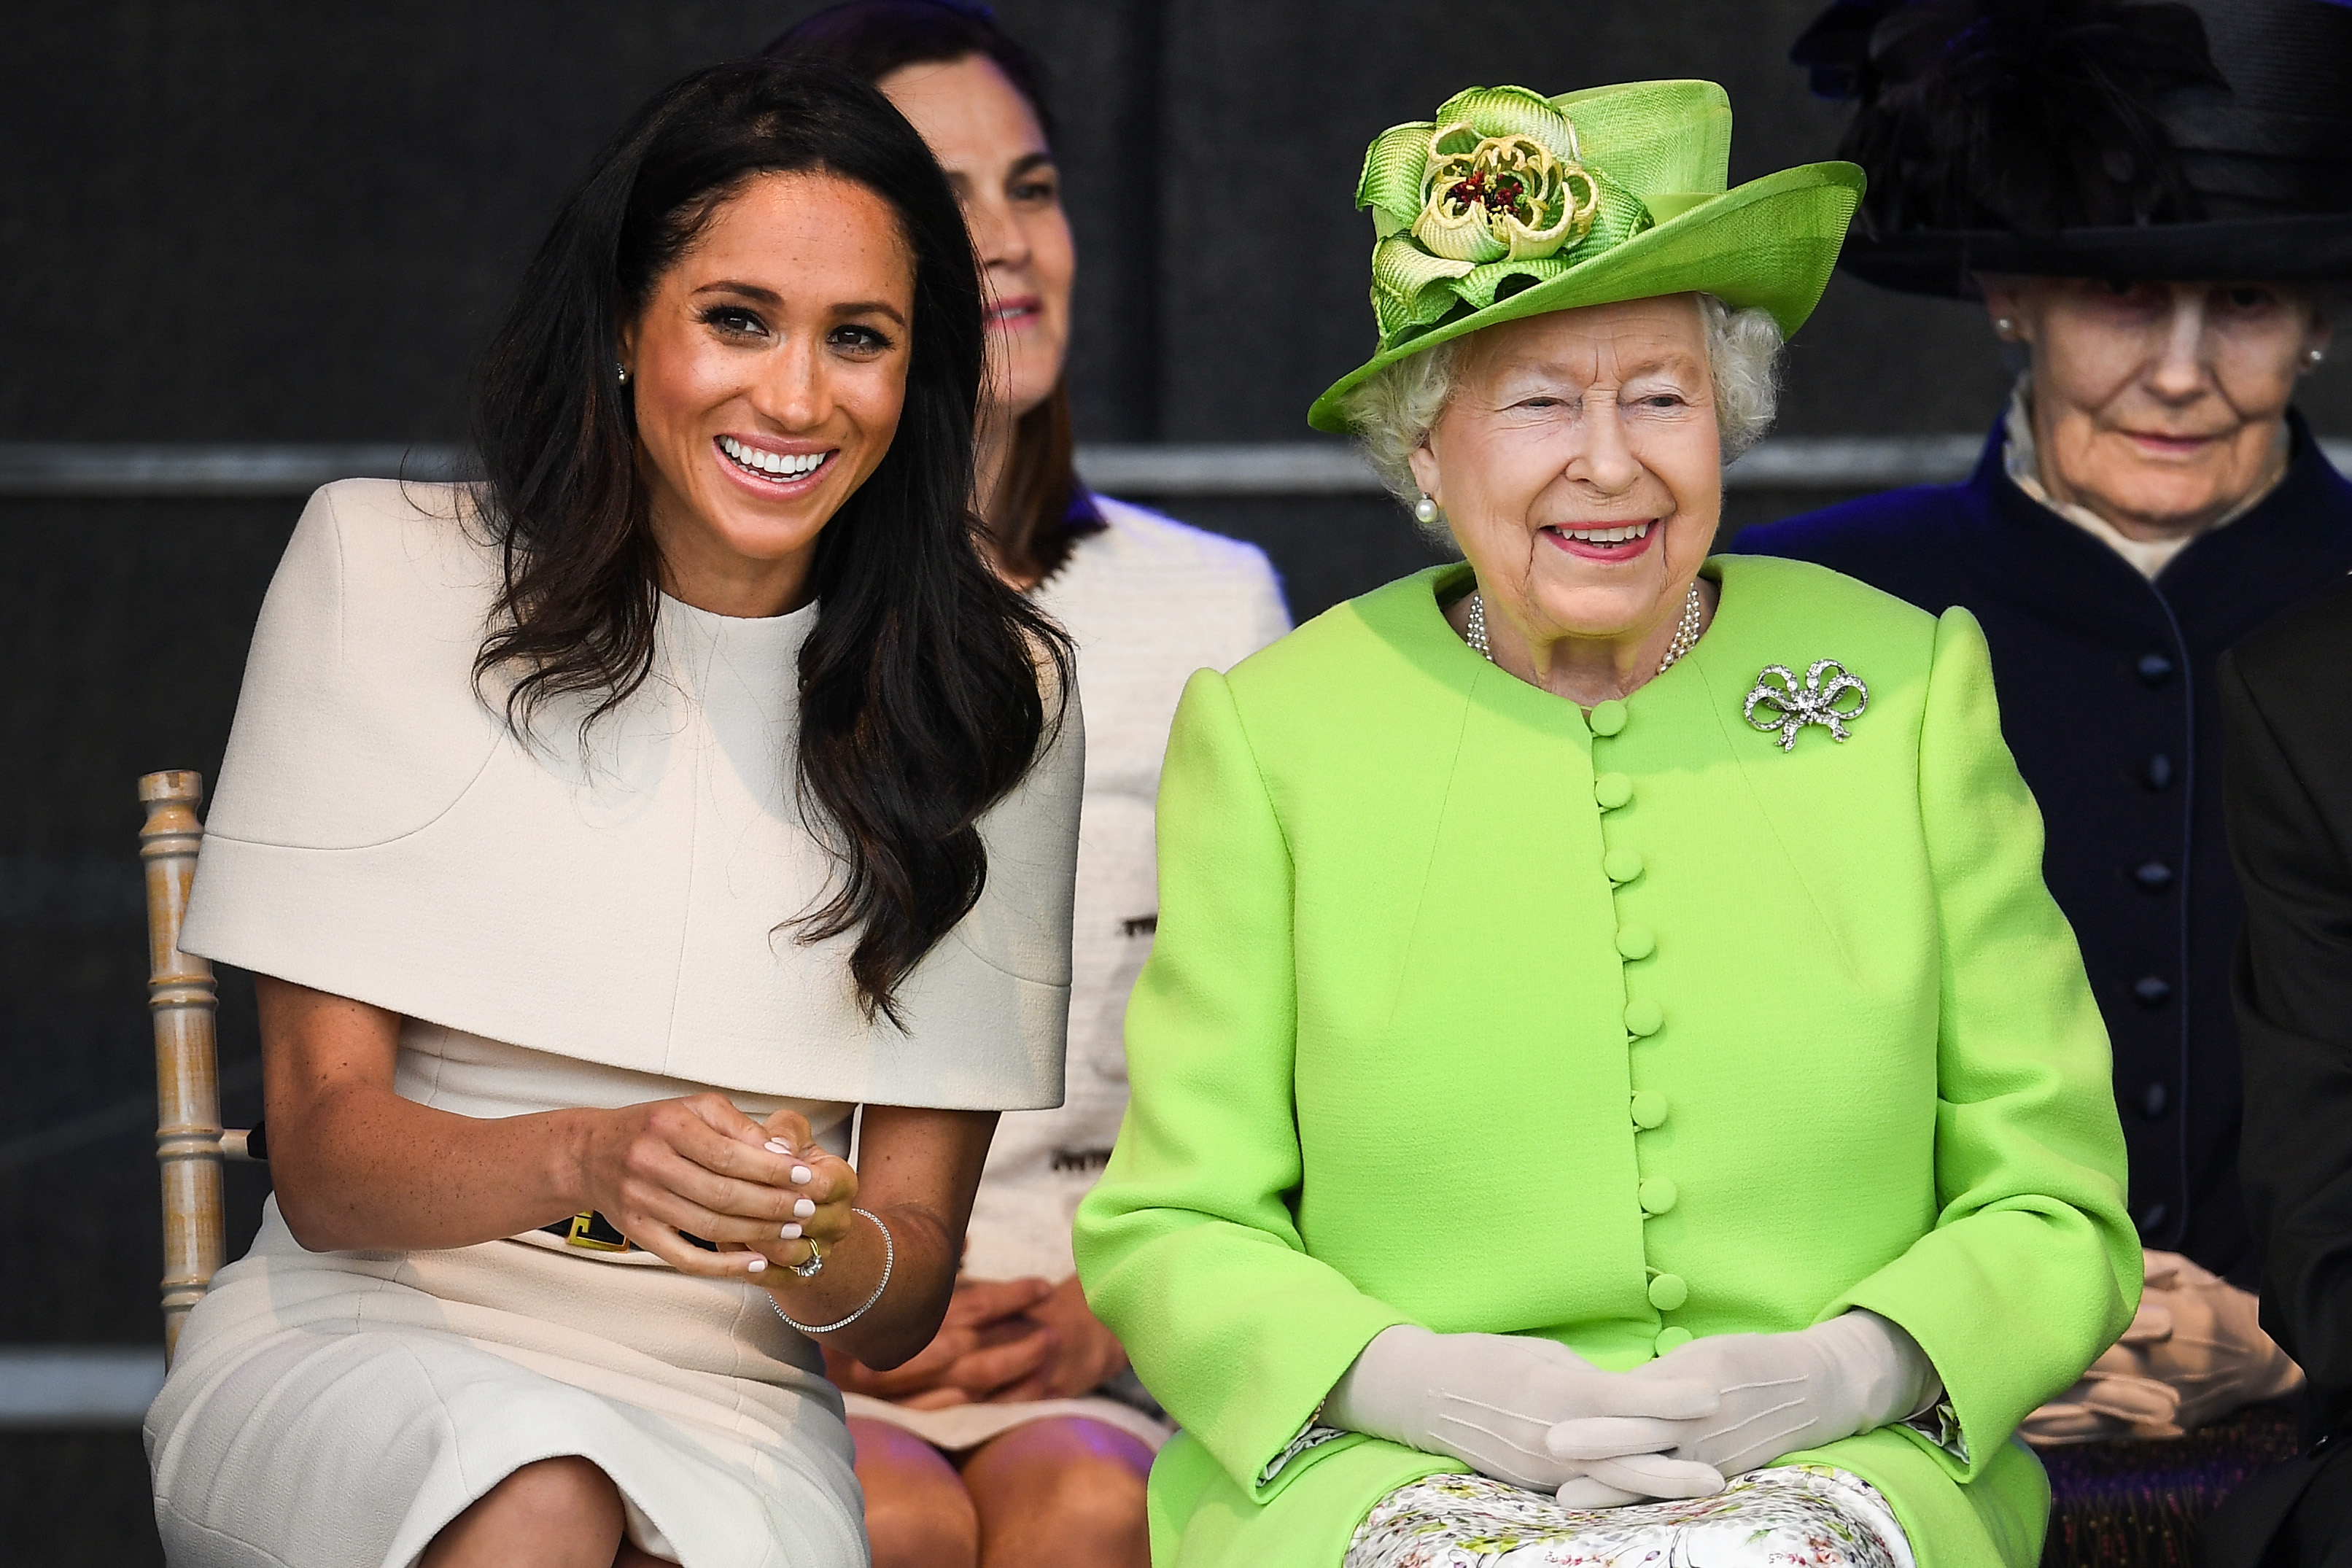 Queen Elizabeth II sits with Meghan, Duchess of Sussex during a ceremony to open the new Mersey Gateway Bridge on June 14, 2018 in the town of Widnes in Halton, Cheshire, England. Meghan Markle married Prince Harry last month to become The Duchess of Sussex and this is her first engagement with the Queen. During the visit the pair will open a road bridge in Widnes and visit The Storyhouse and Town Hall in Chester.